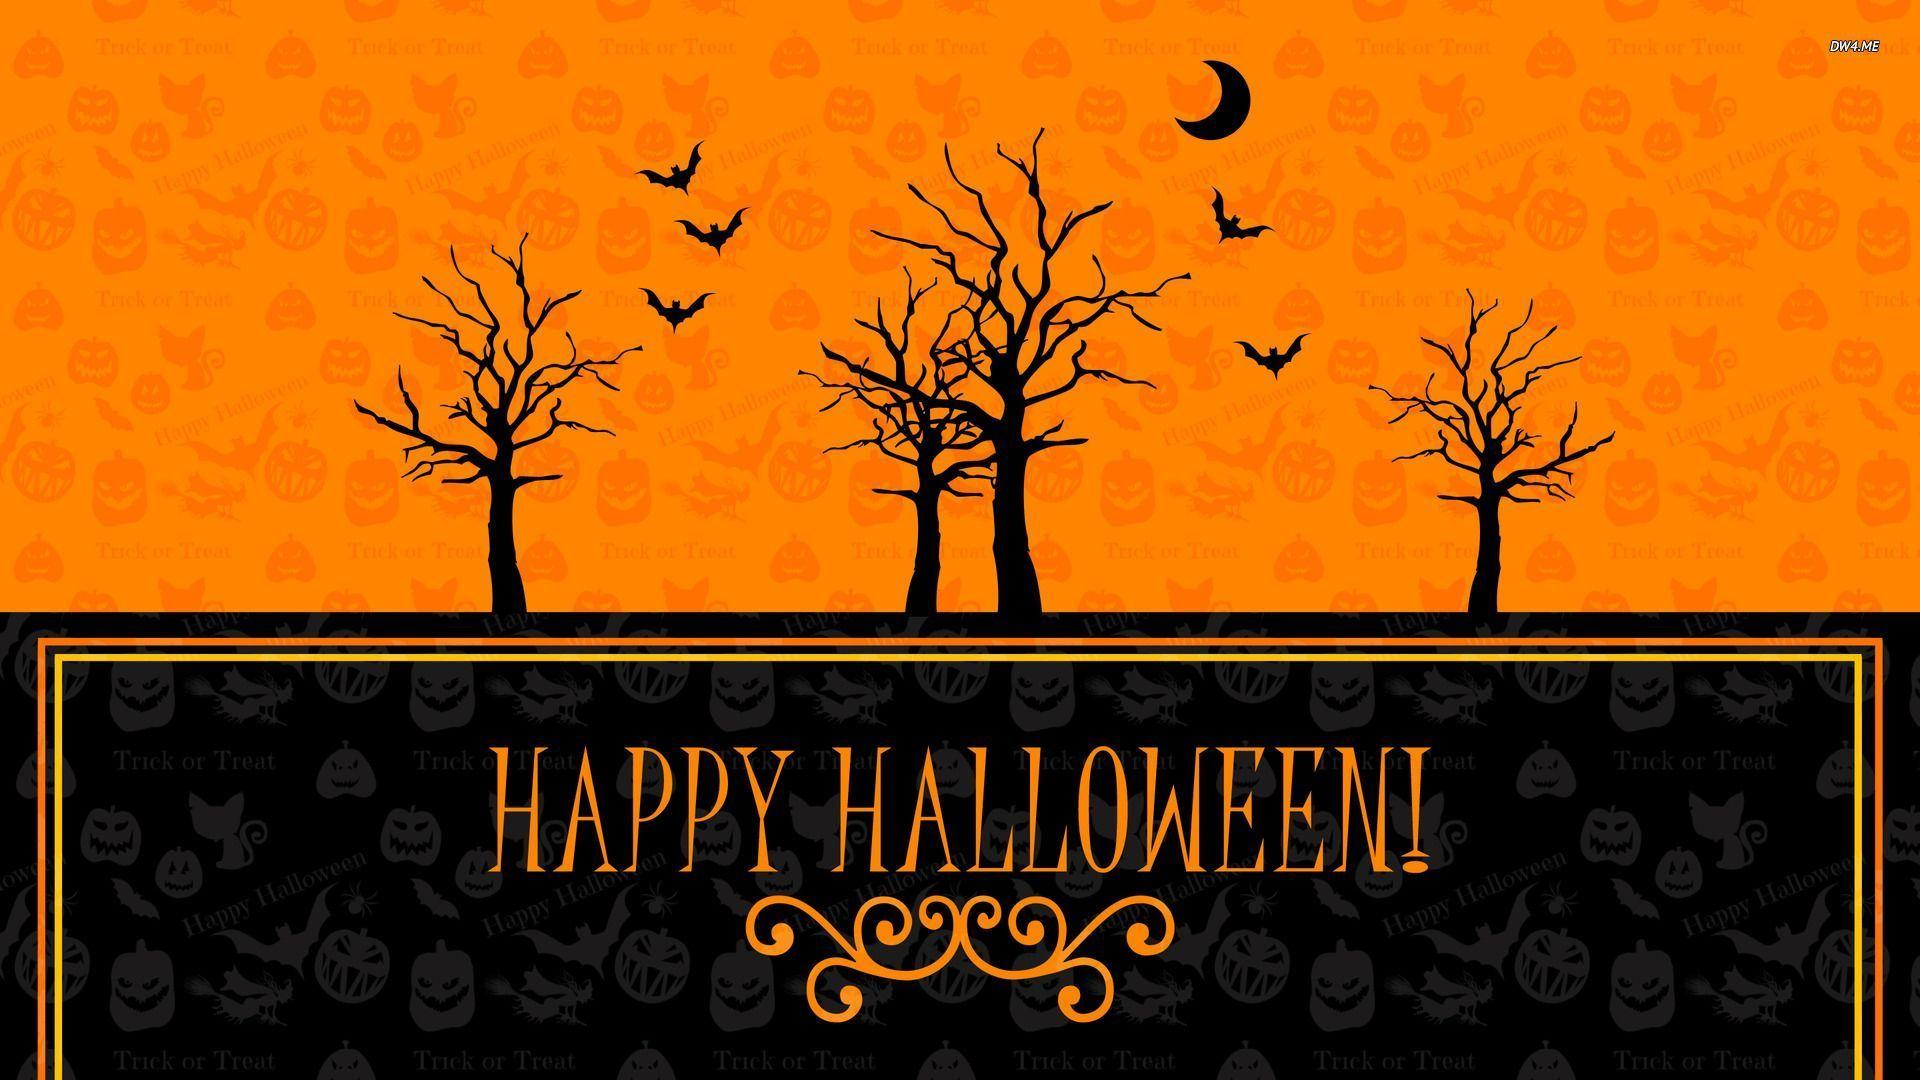 happy halloween wallpapers - photo #9